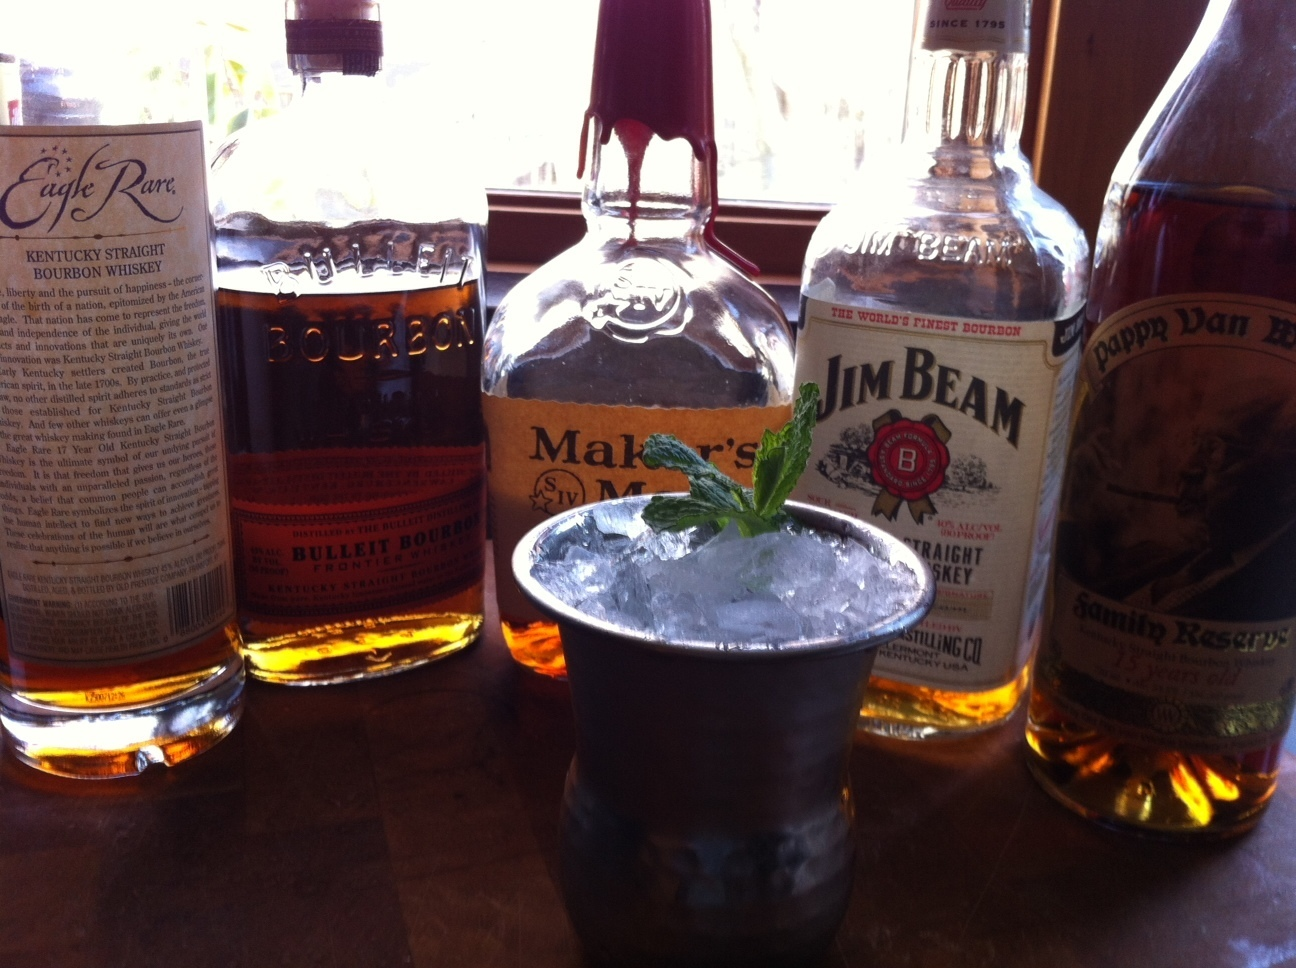 THE MINT JULEP: PERHAPS THE GREATEST BOURBON DRINK EVER